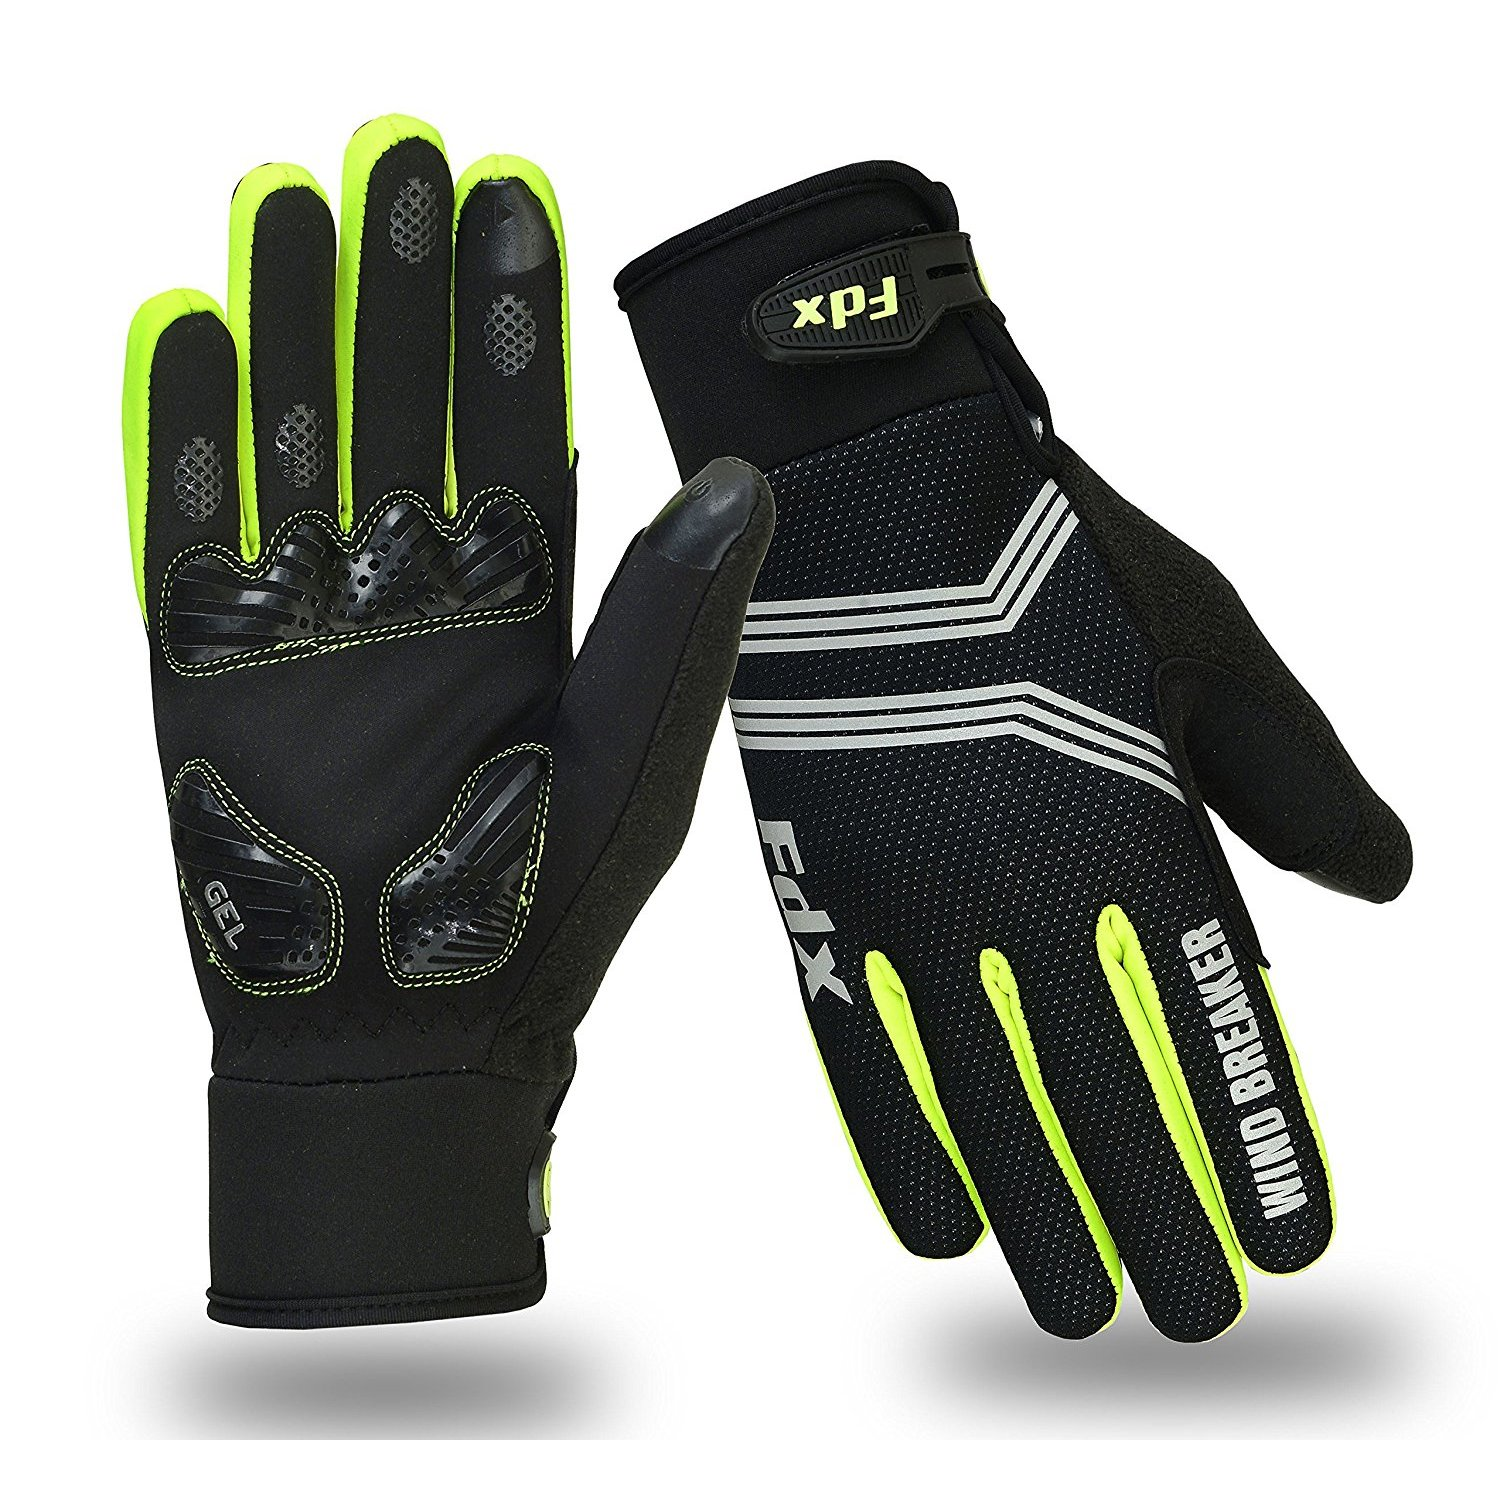 FDX Cycling Gloves Windproof Gel Padded Touchscreen Compatible - In 3 Colours